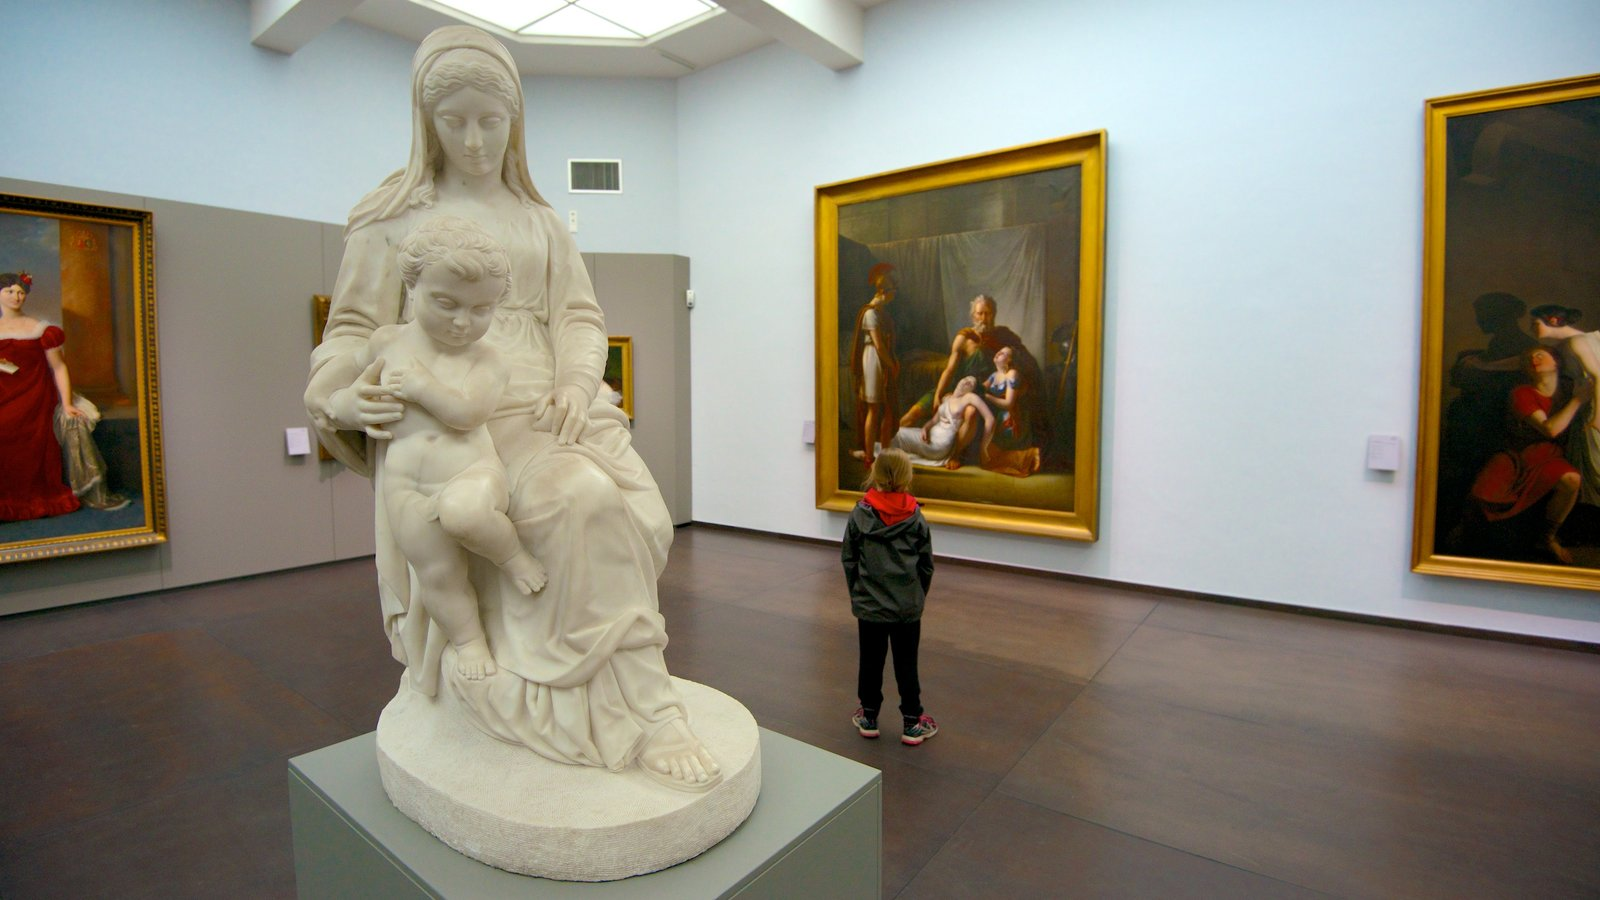 Groeningemuseum which includes art and interior views as well as an individual child